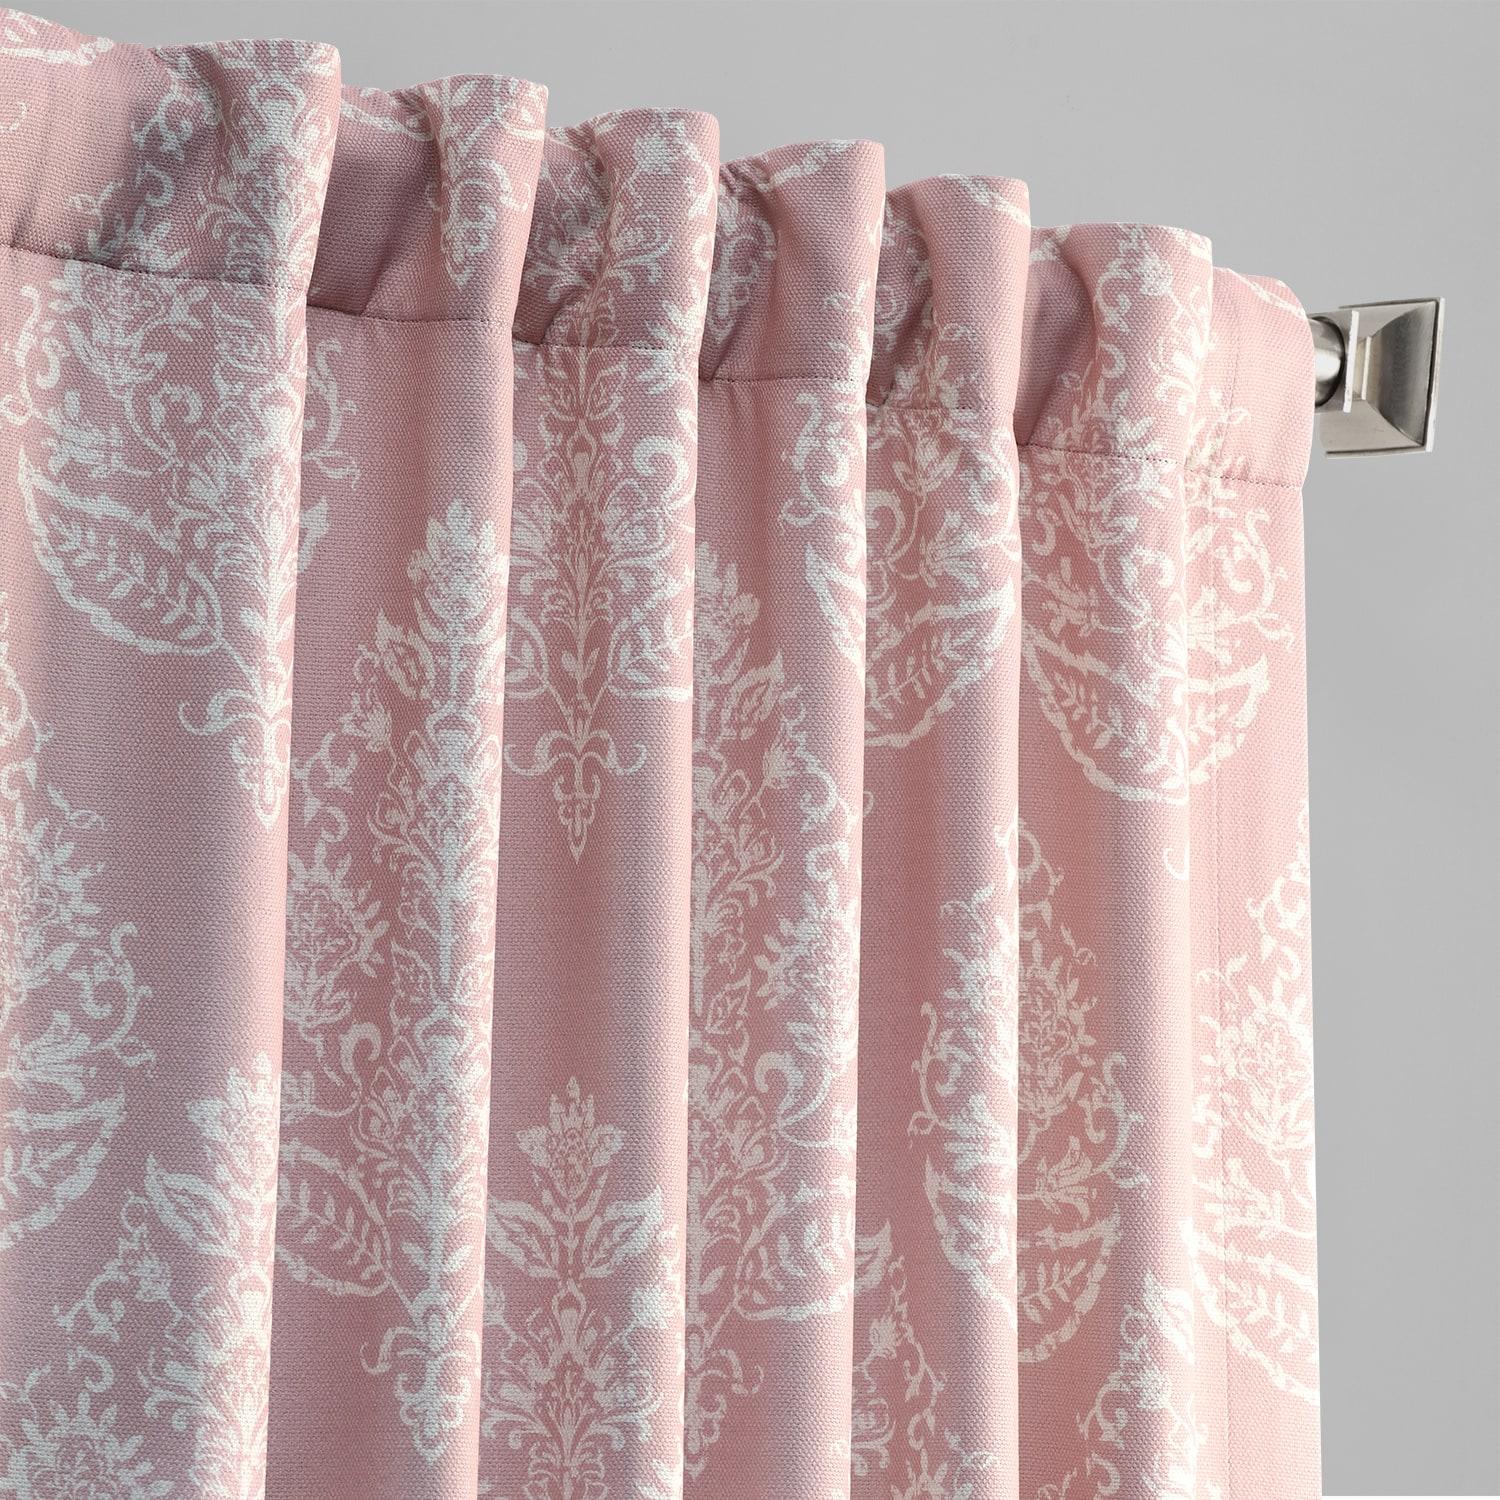 Istanbul Pink Printed Linen Textured Blackout Curtain